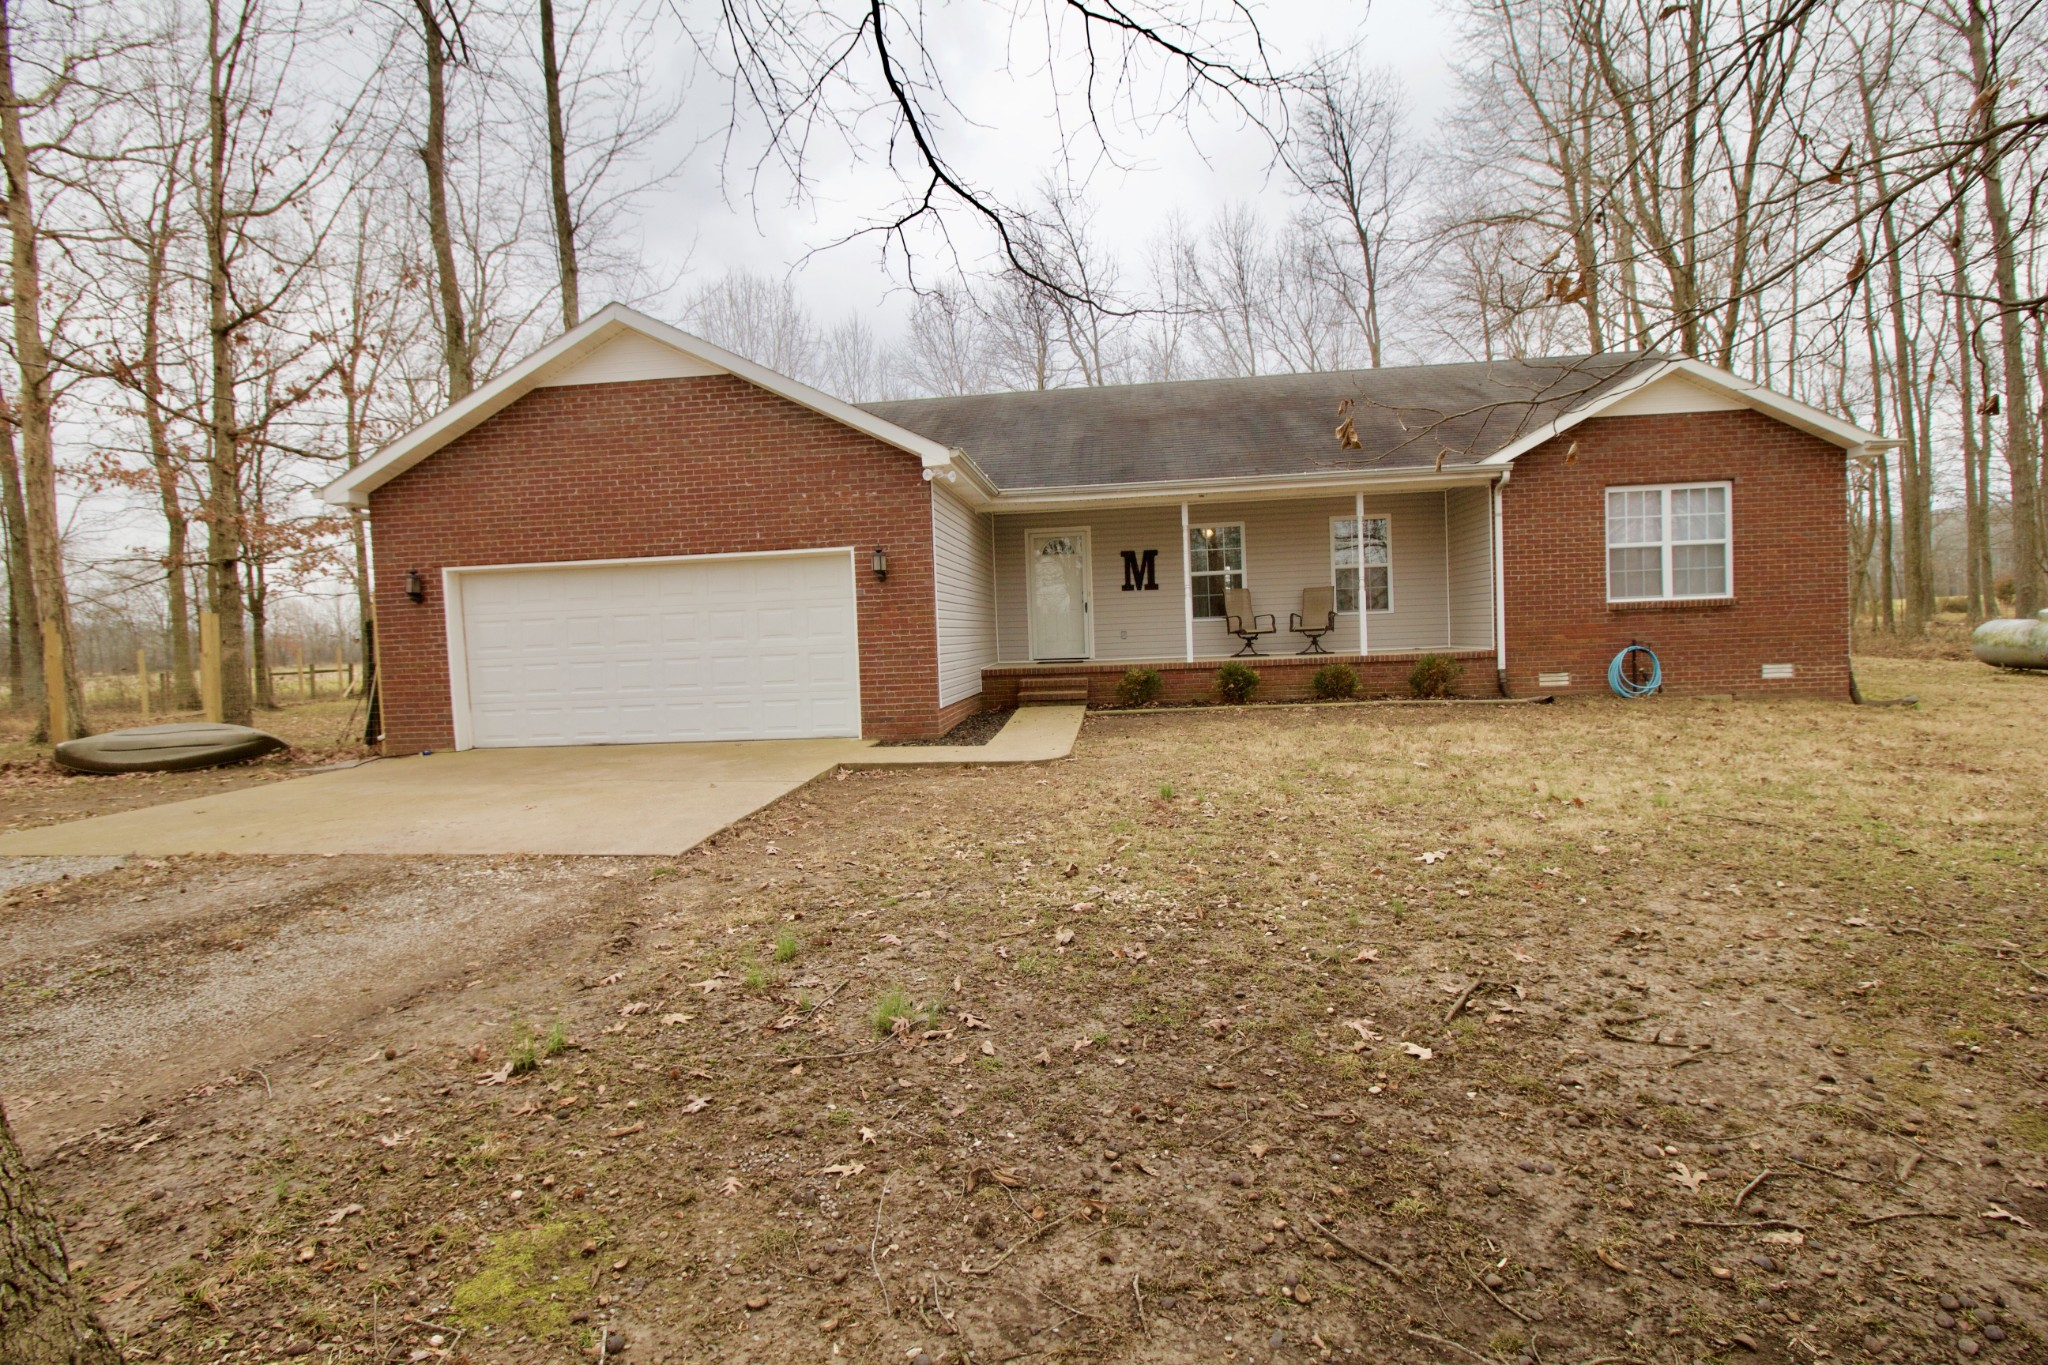 2276 Flat Lick Ln Property Photo - Herndon, KY real estate listing